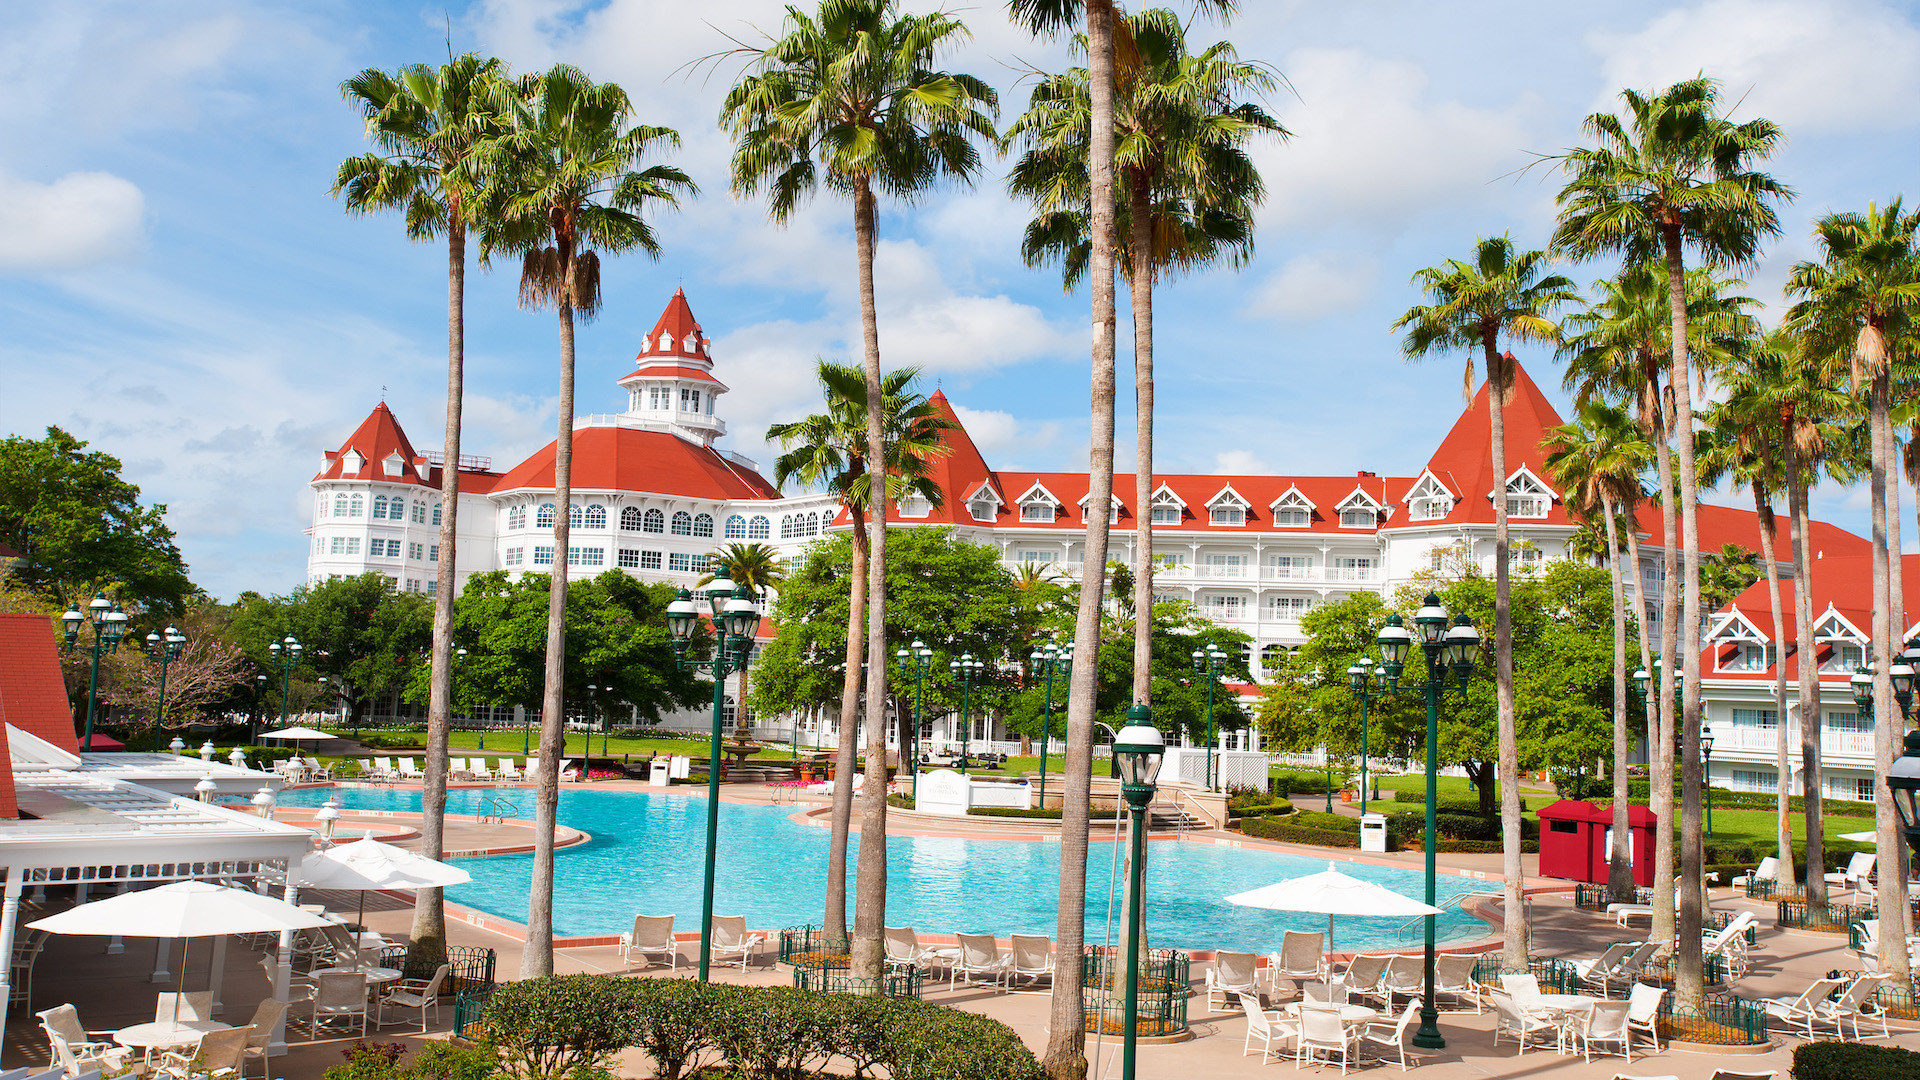 Experience turn of the century luxury at Disney's Grand Floridian Resort and Spa